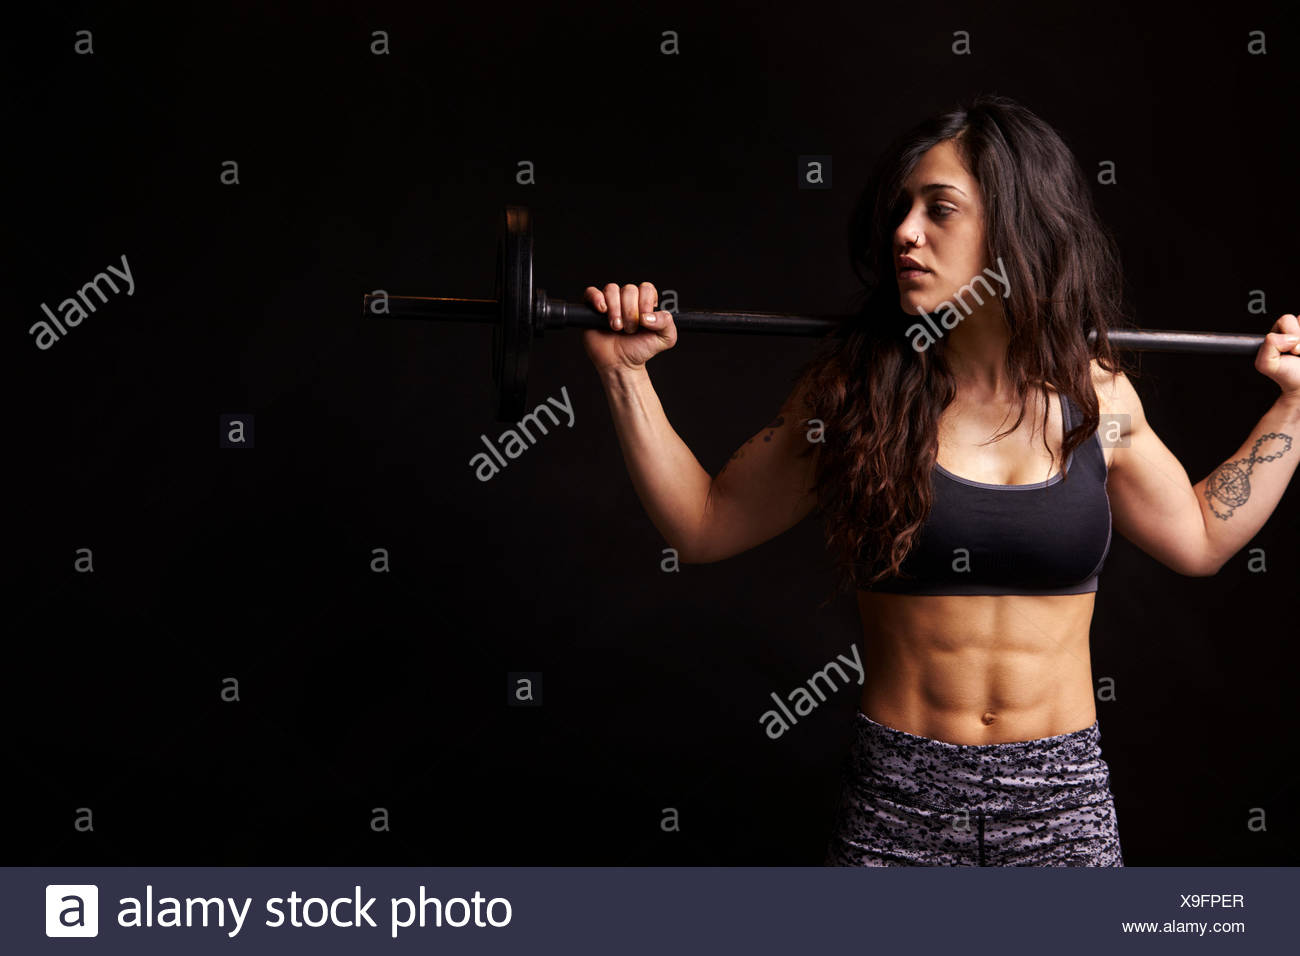 Muscular dark haired woman holding barbell on her shoulders - Stock Image